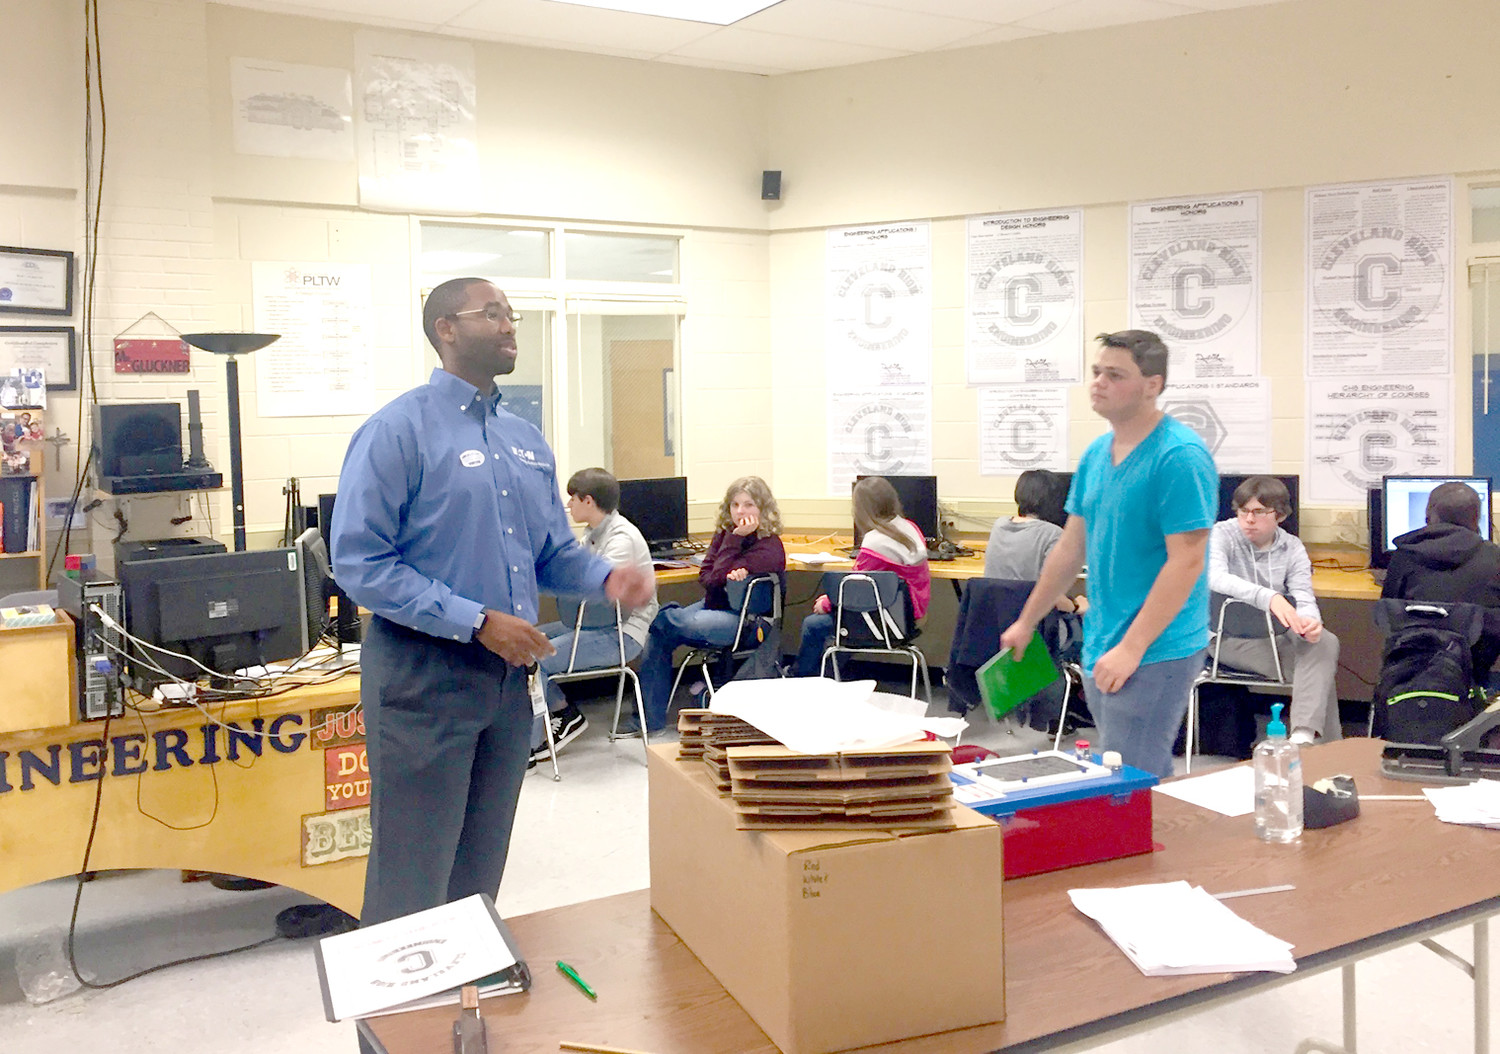 MICHAEL PATTERSON of Eaton Electrical speaks to students in David Glockner's class at Cleveland High School about a project they were about to do for Cleveland Associated Industries' Manufacturing Week.